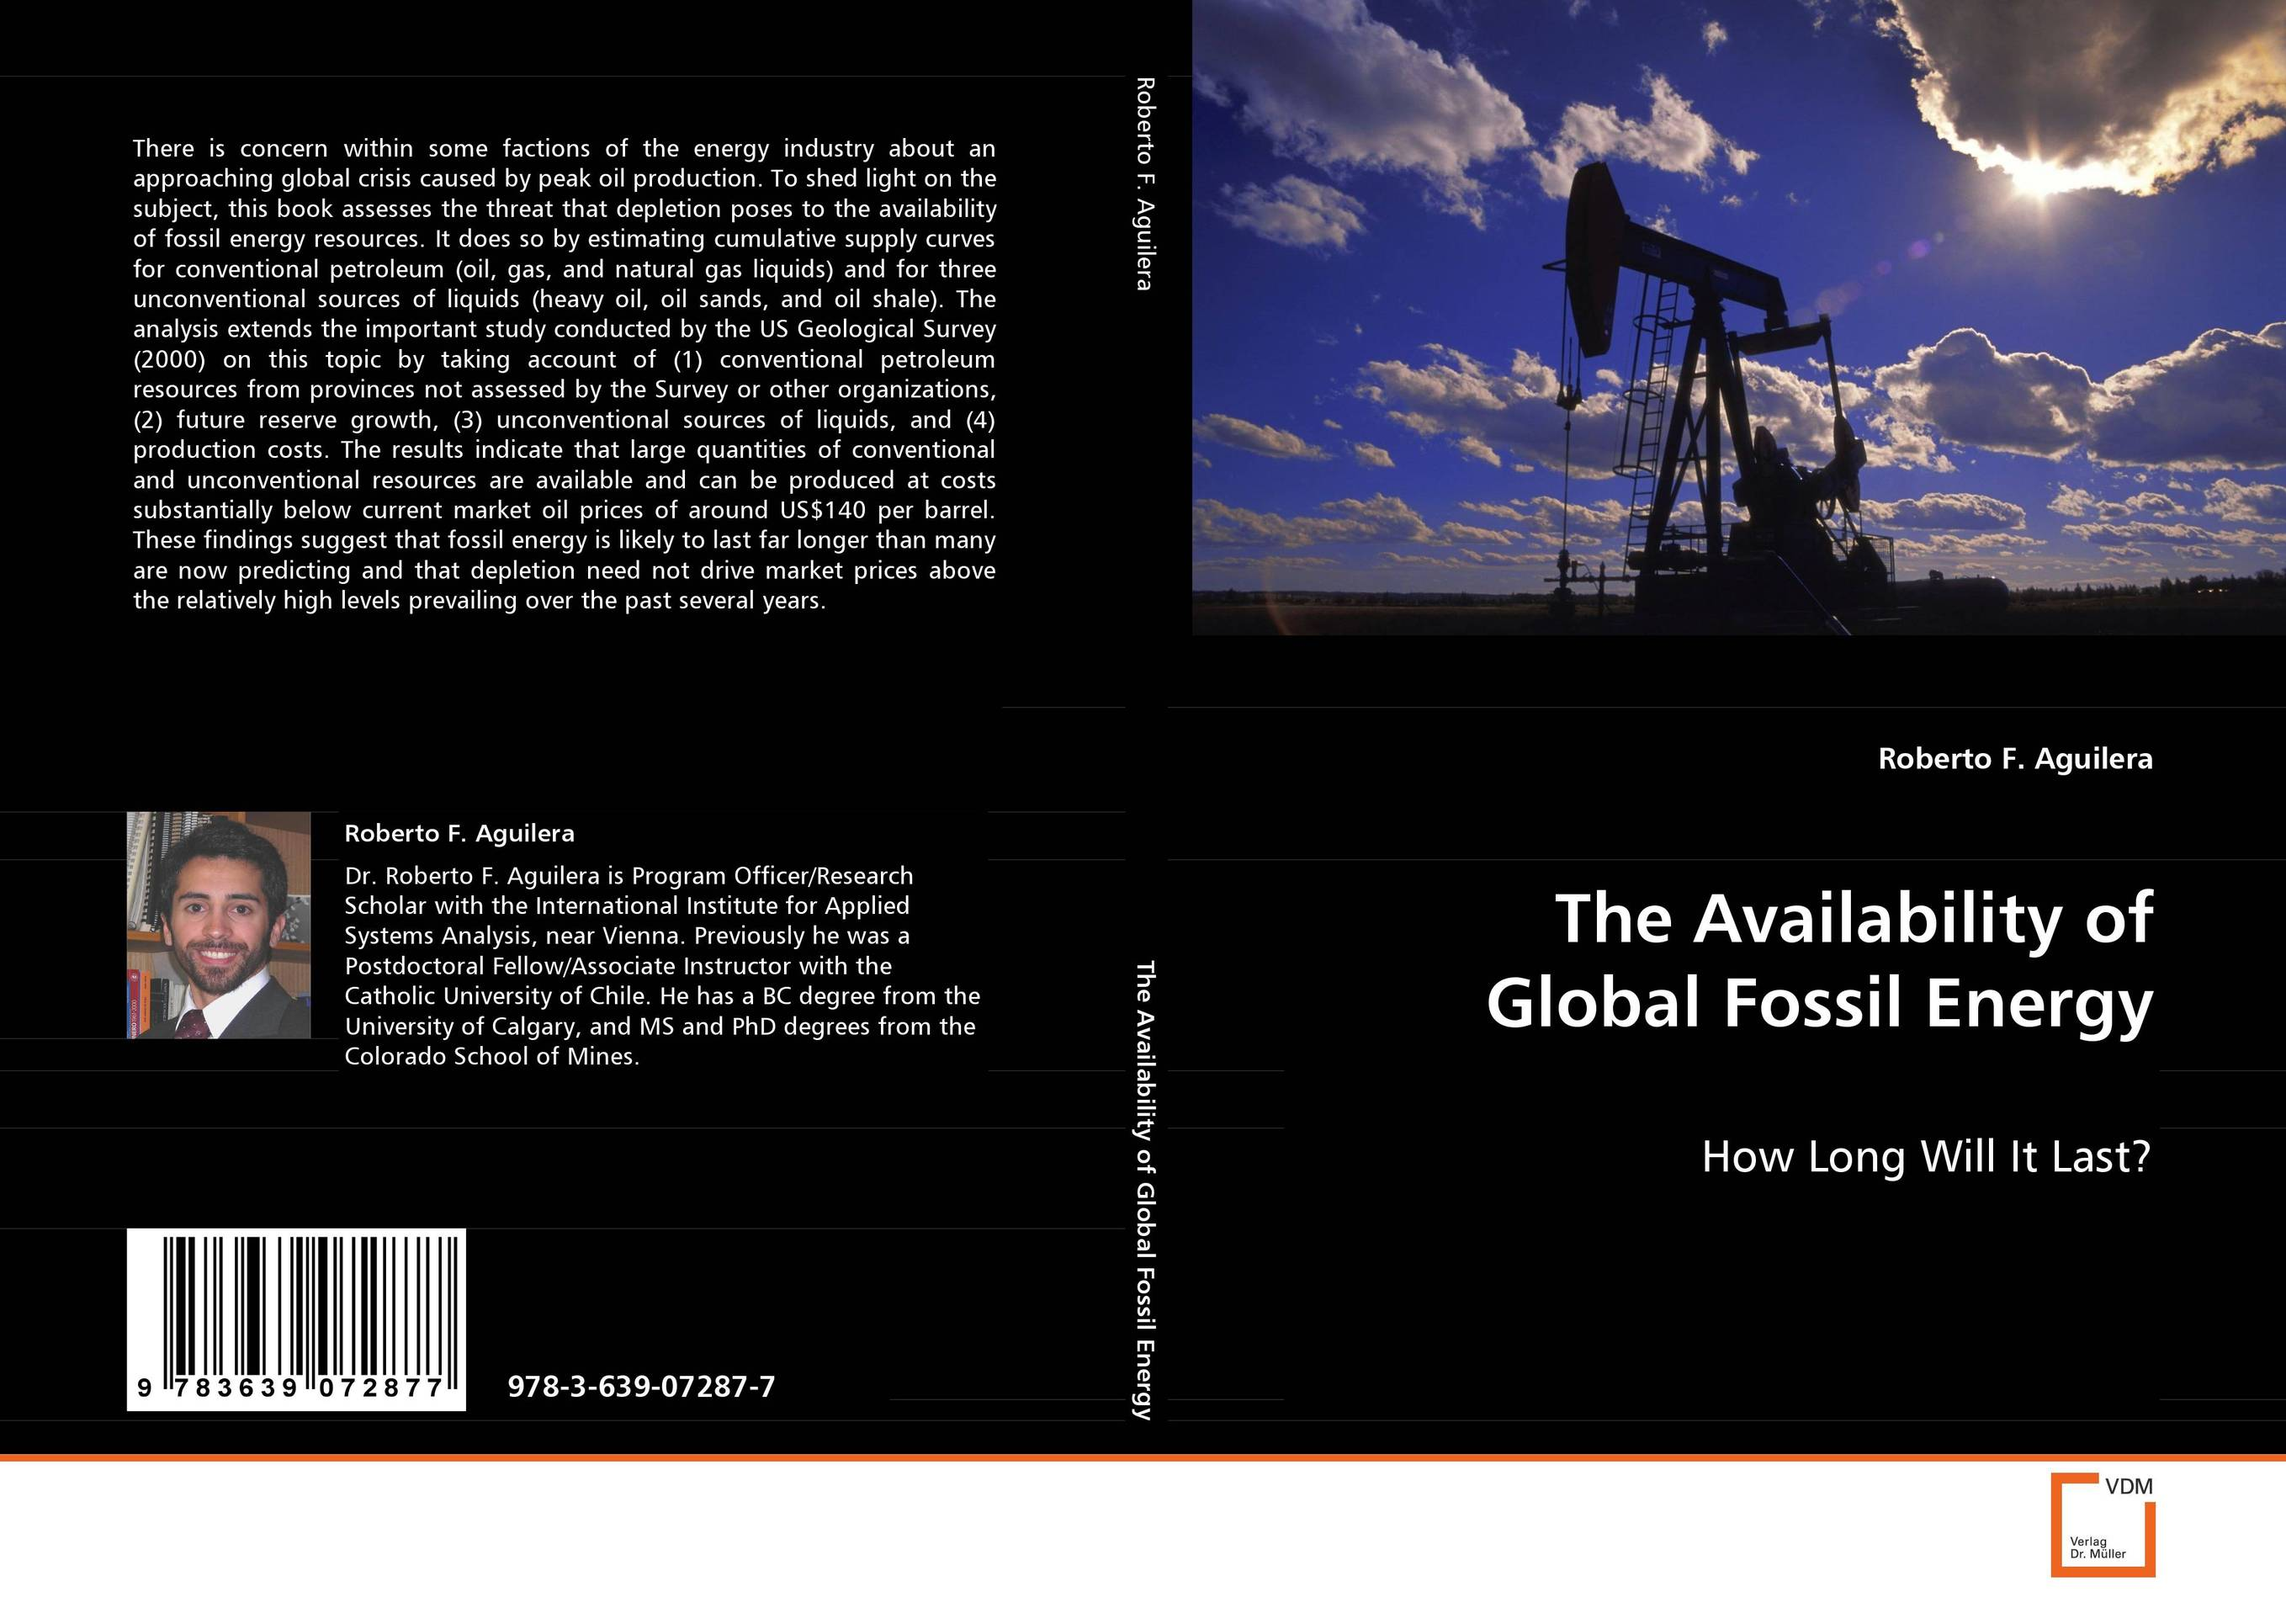 The Availability of Global Fossil Energy estimating technically and economically recoverable unconventional gas